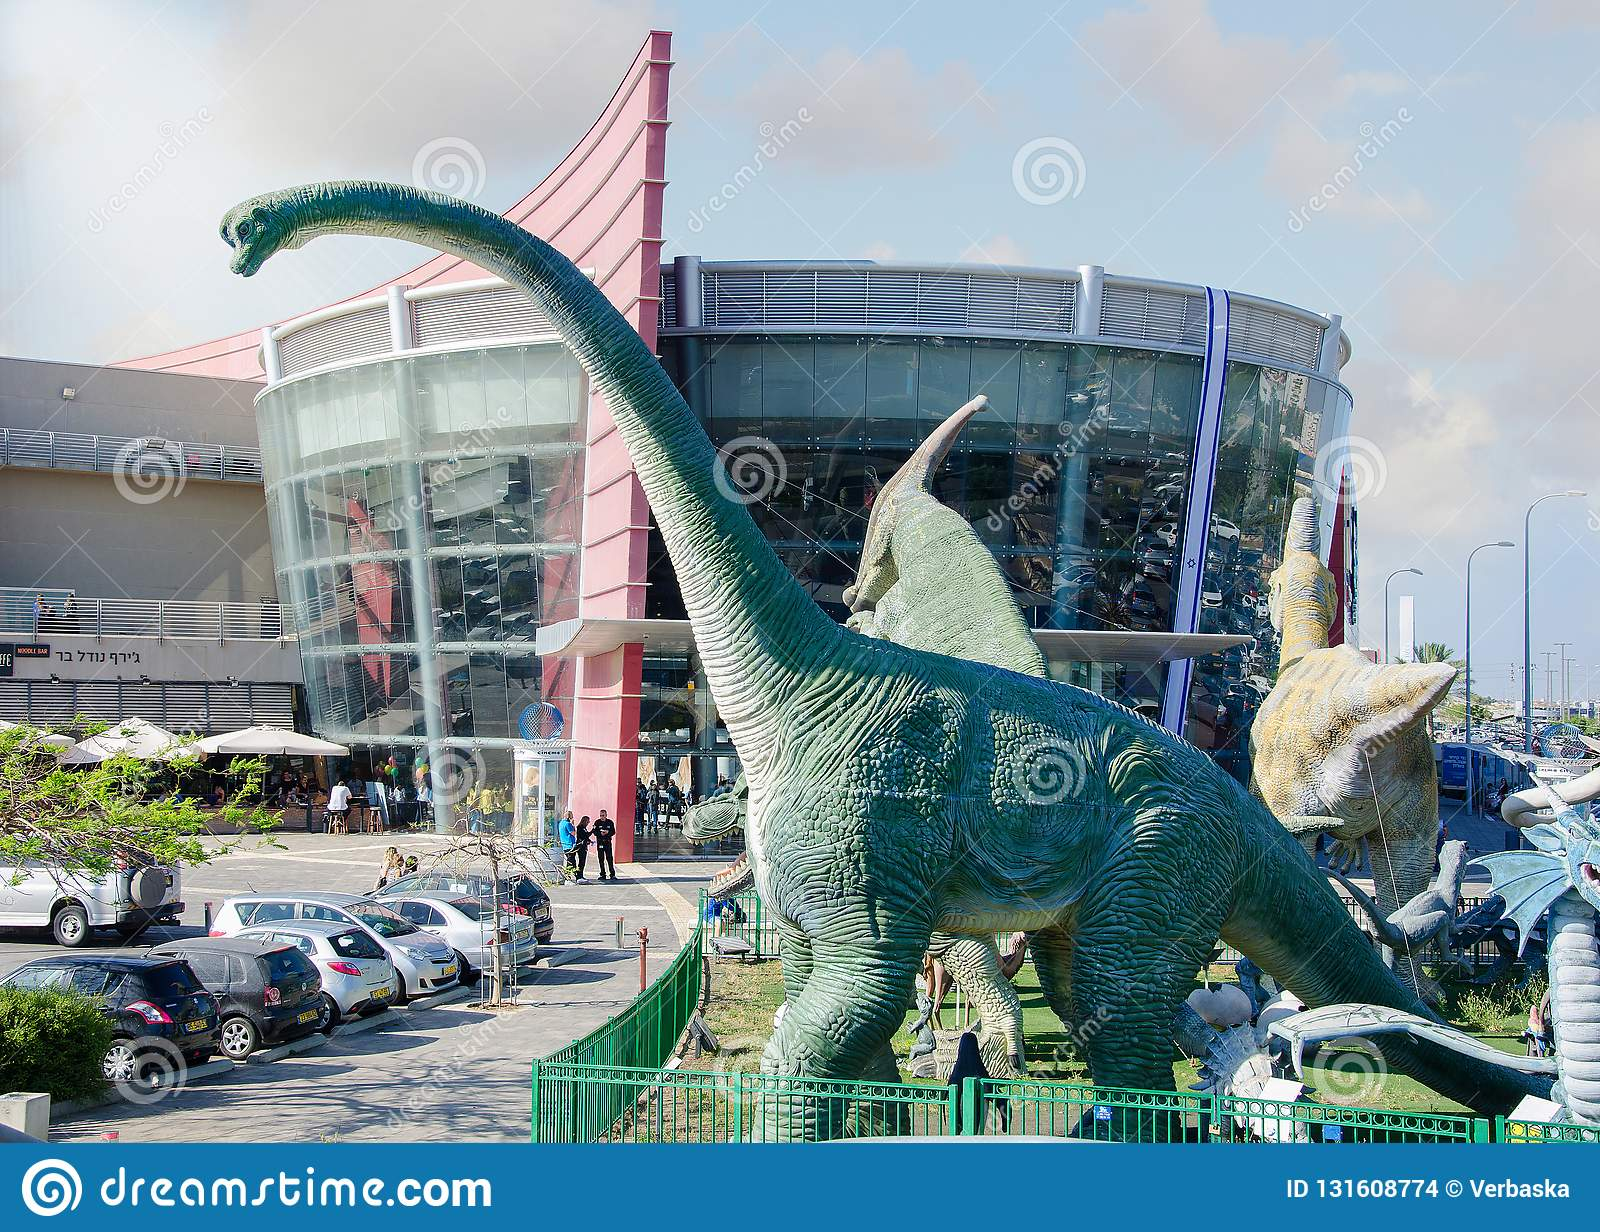 The real size sculptures of most known dinosaurs species are in the fenced ground in front of the entrance to the Cinema City.